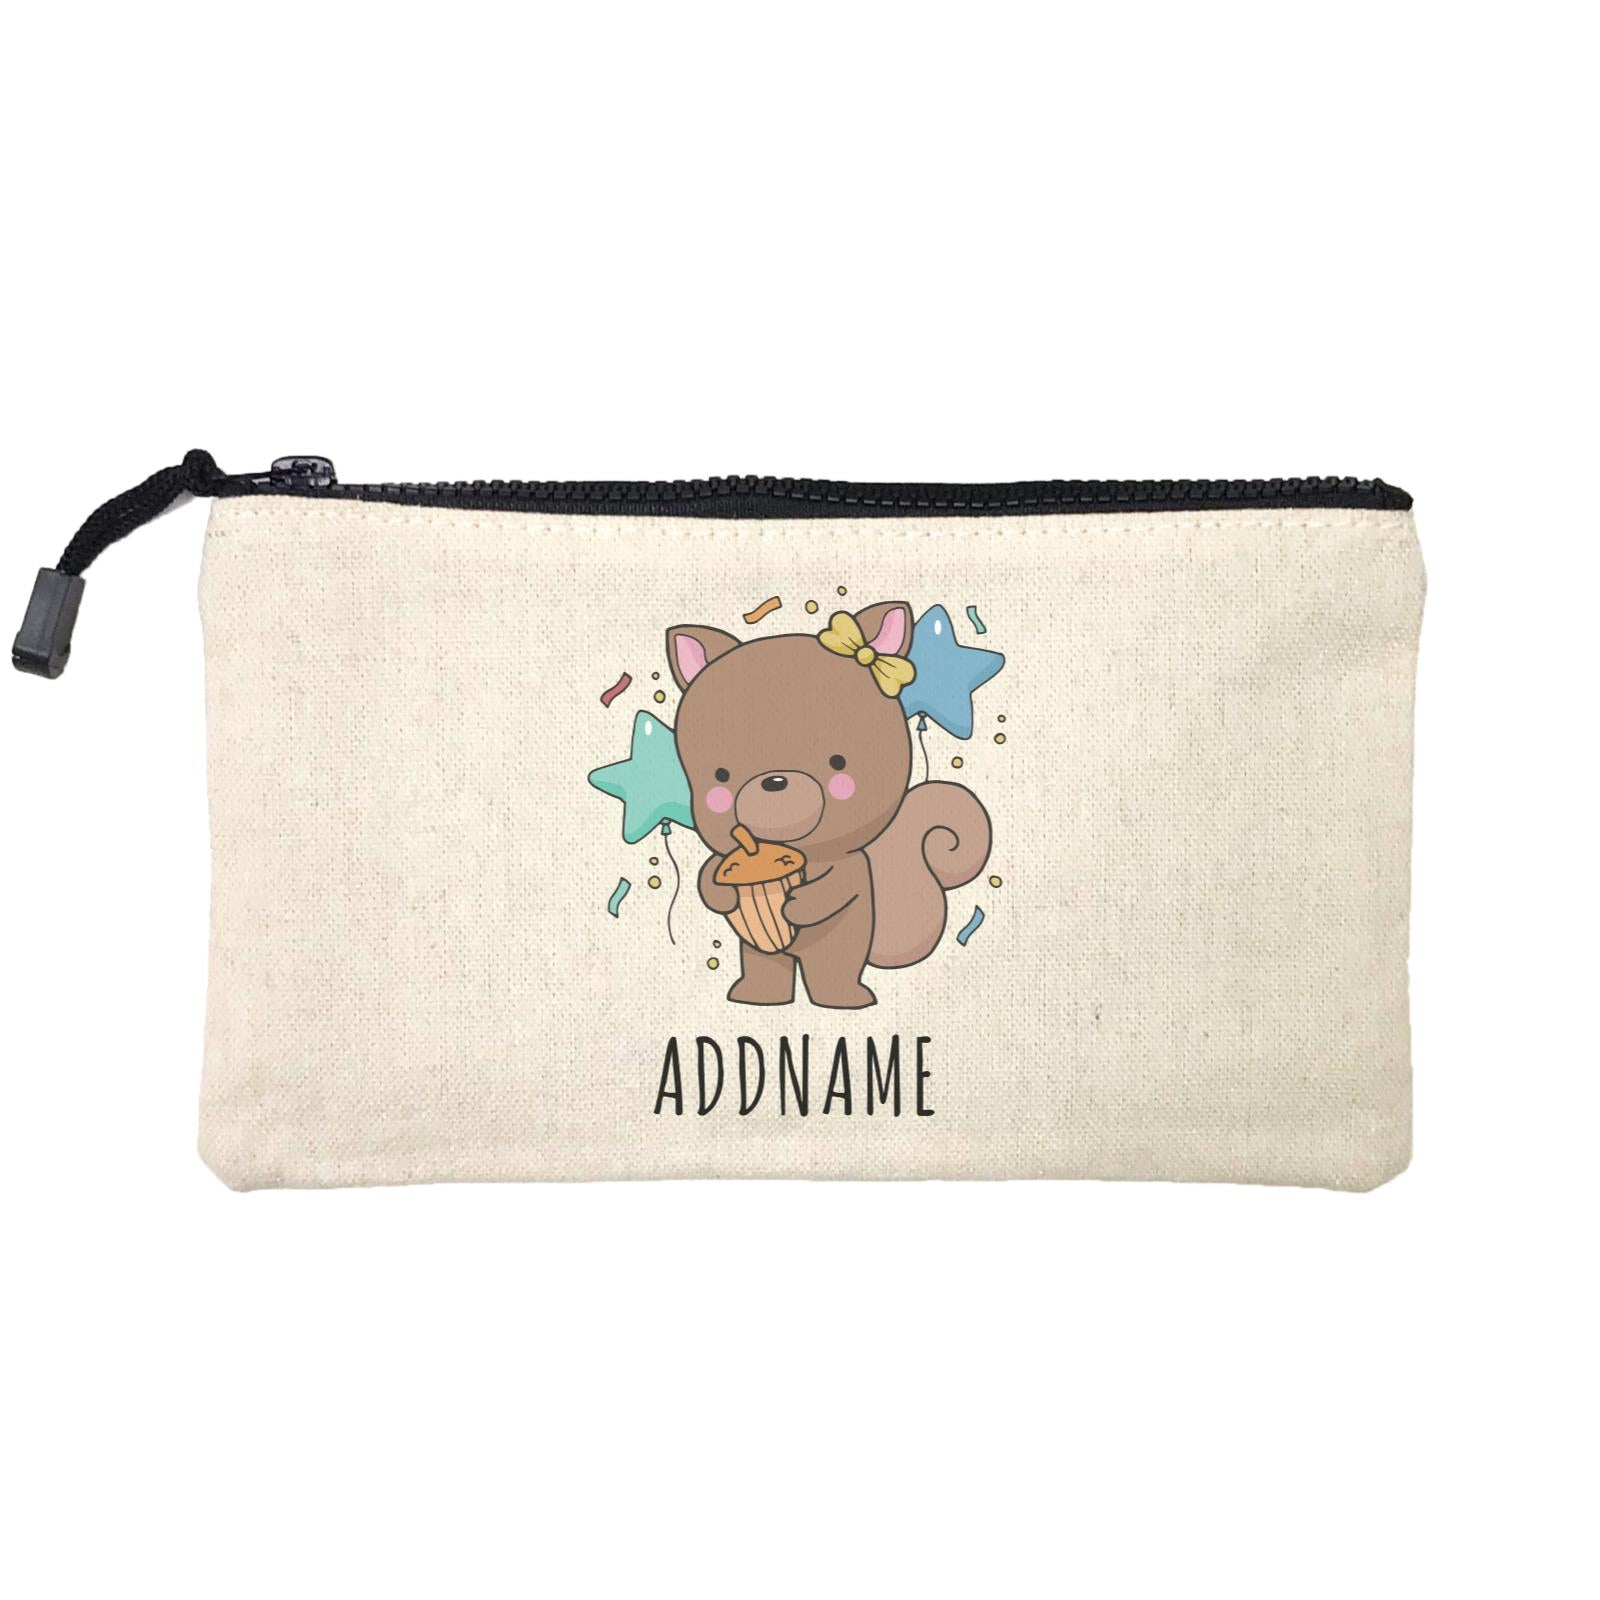 Birthday Sketch Animals Squirrel with Acorn Addname Turns 1 Mini Accessories Stationery Pouch